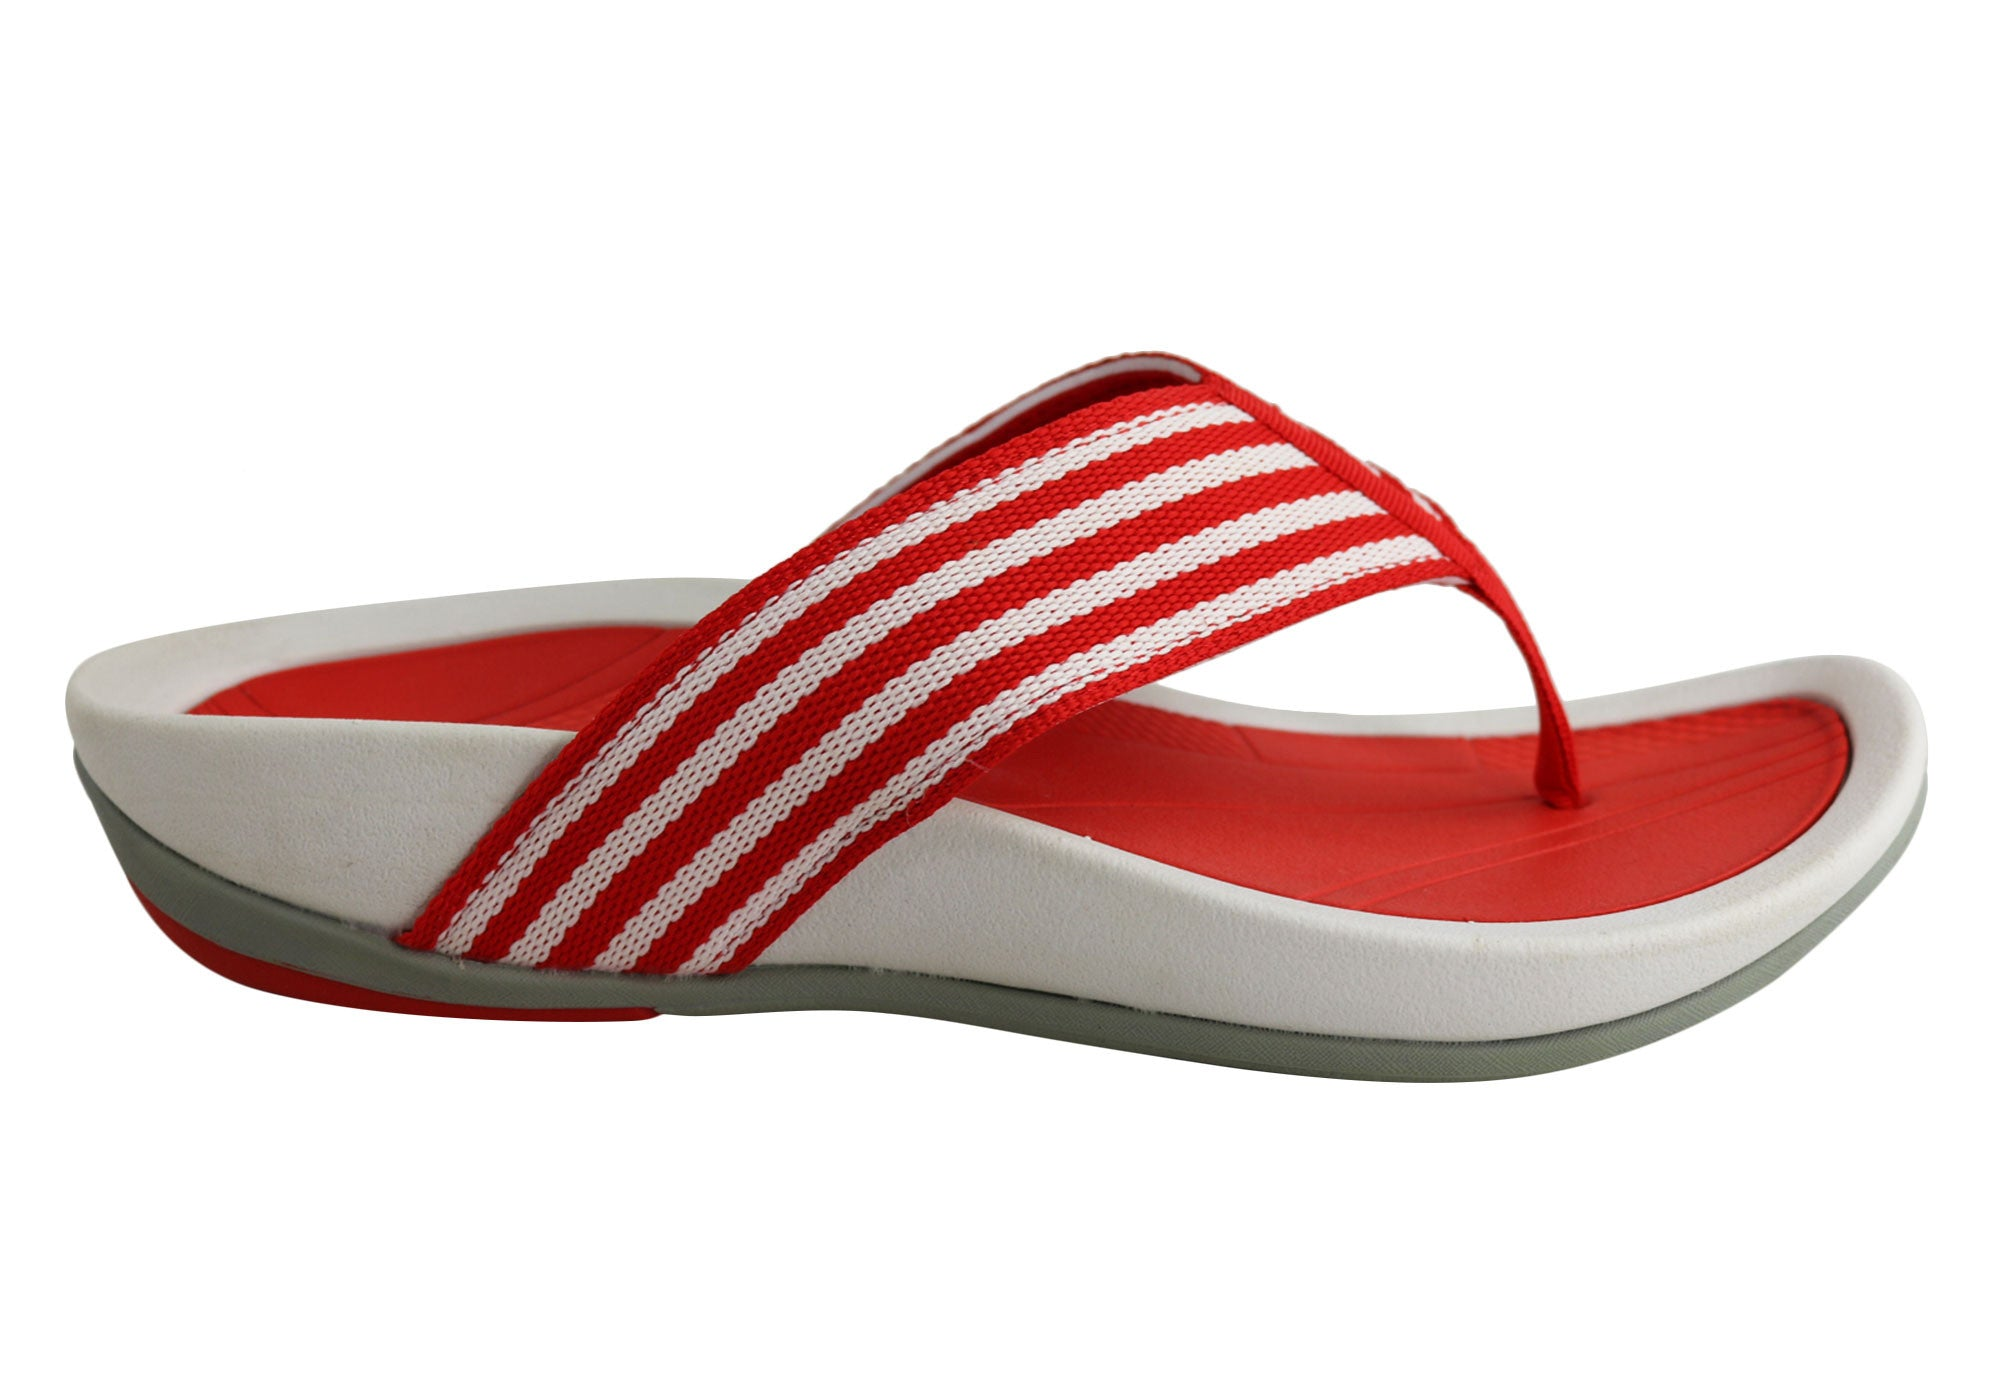 ee4a1cdebcfa Scholl Orthaheel Strike Womens Comfortable Thongs